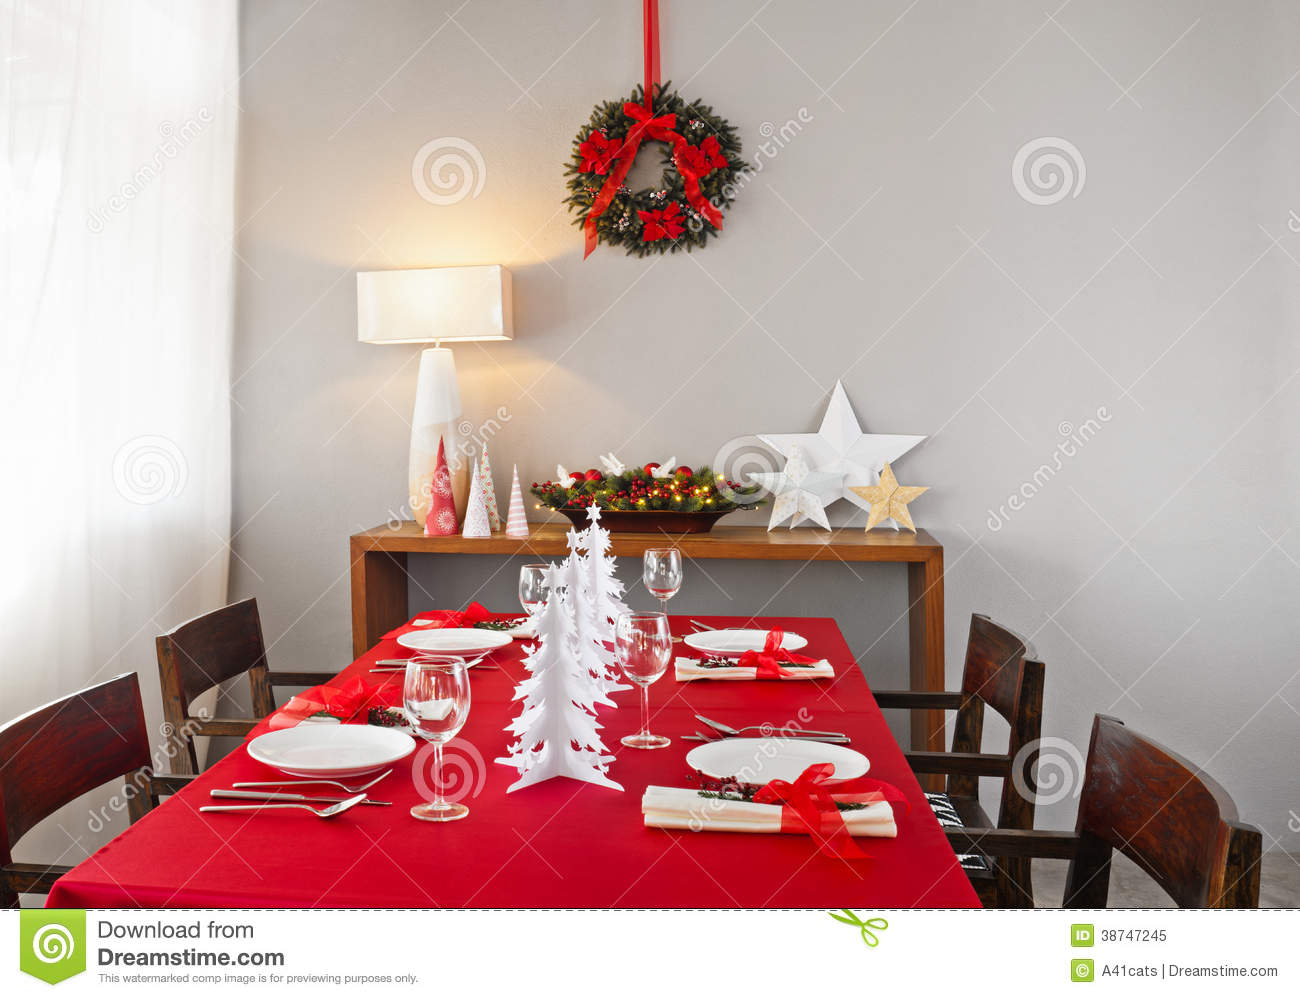 Christmas Dinner Table Setup Royalty Free Stock Photo